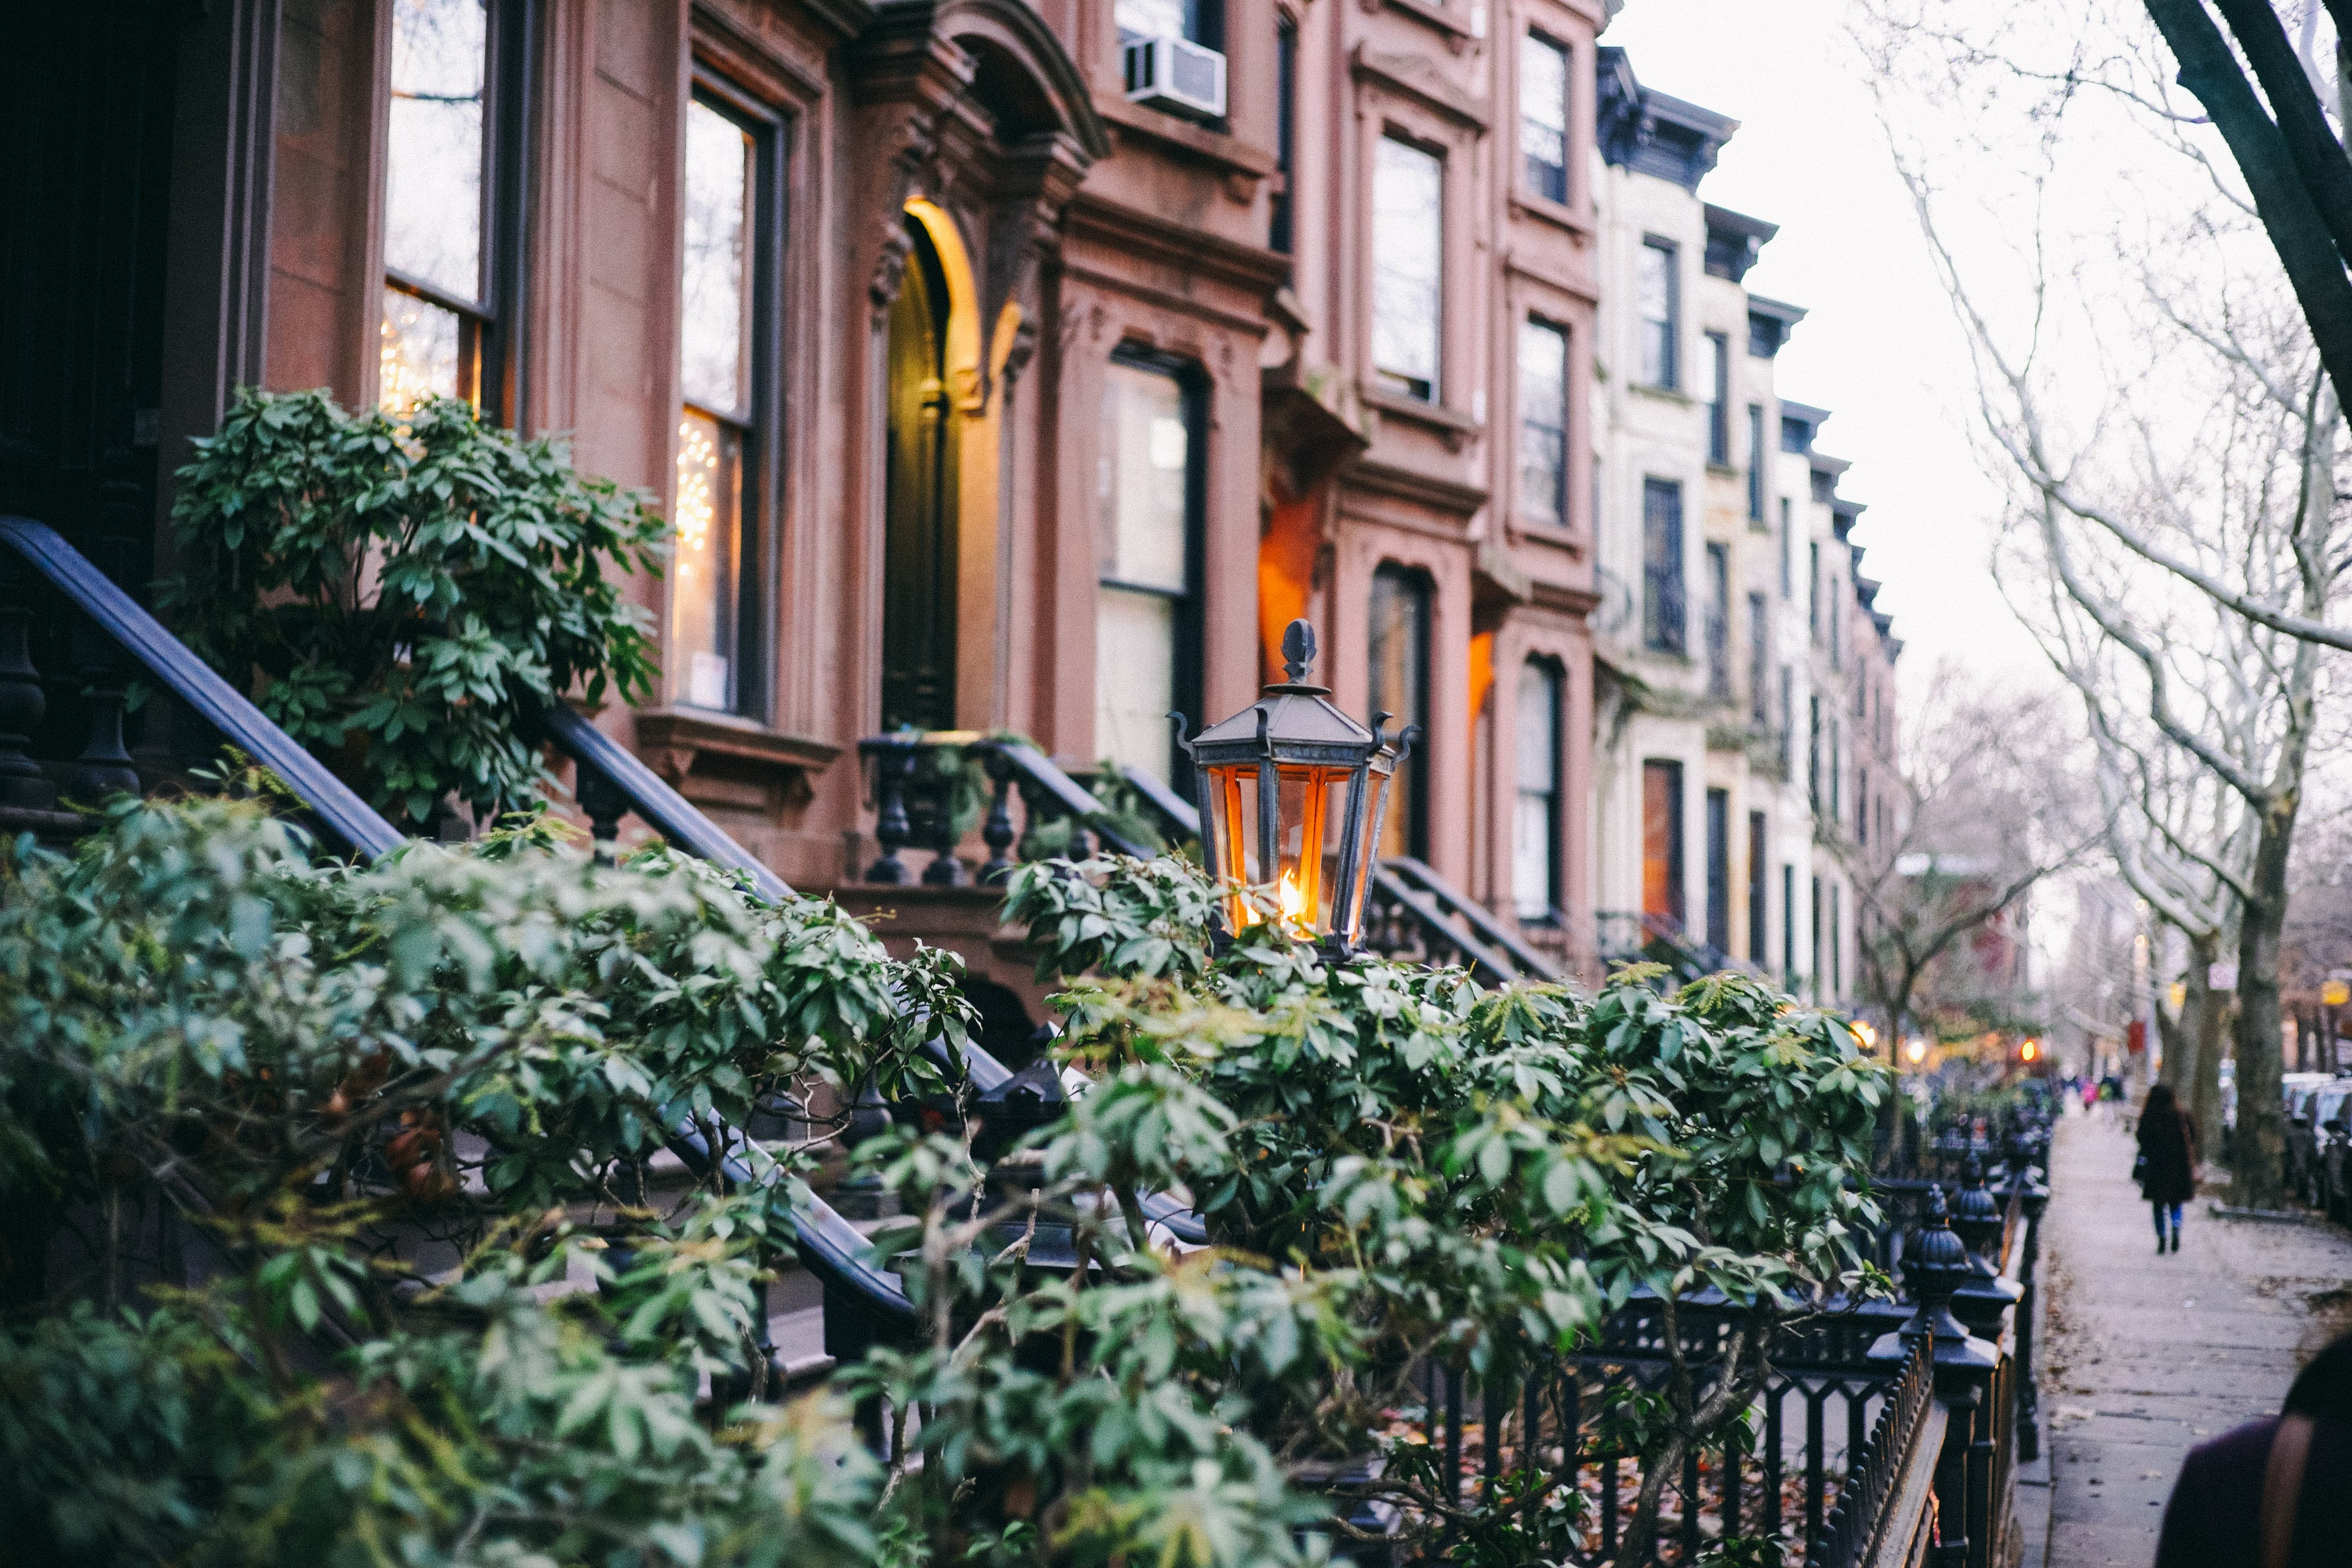 A close up on a row of buildings with lush greenery. With the right Park Slope movers, one of those doors could be yours!